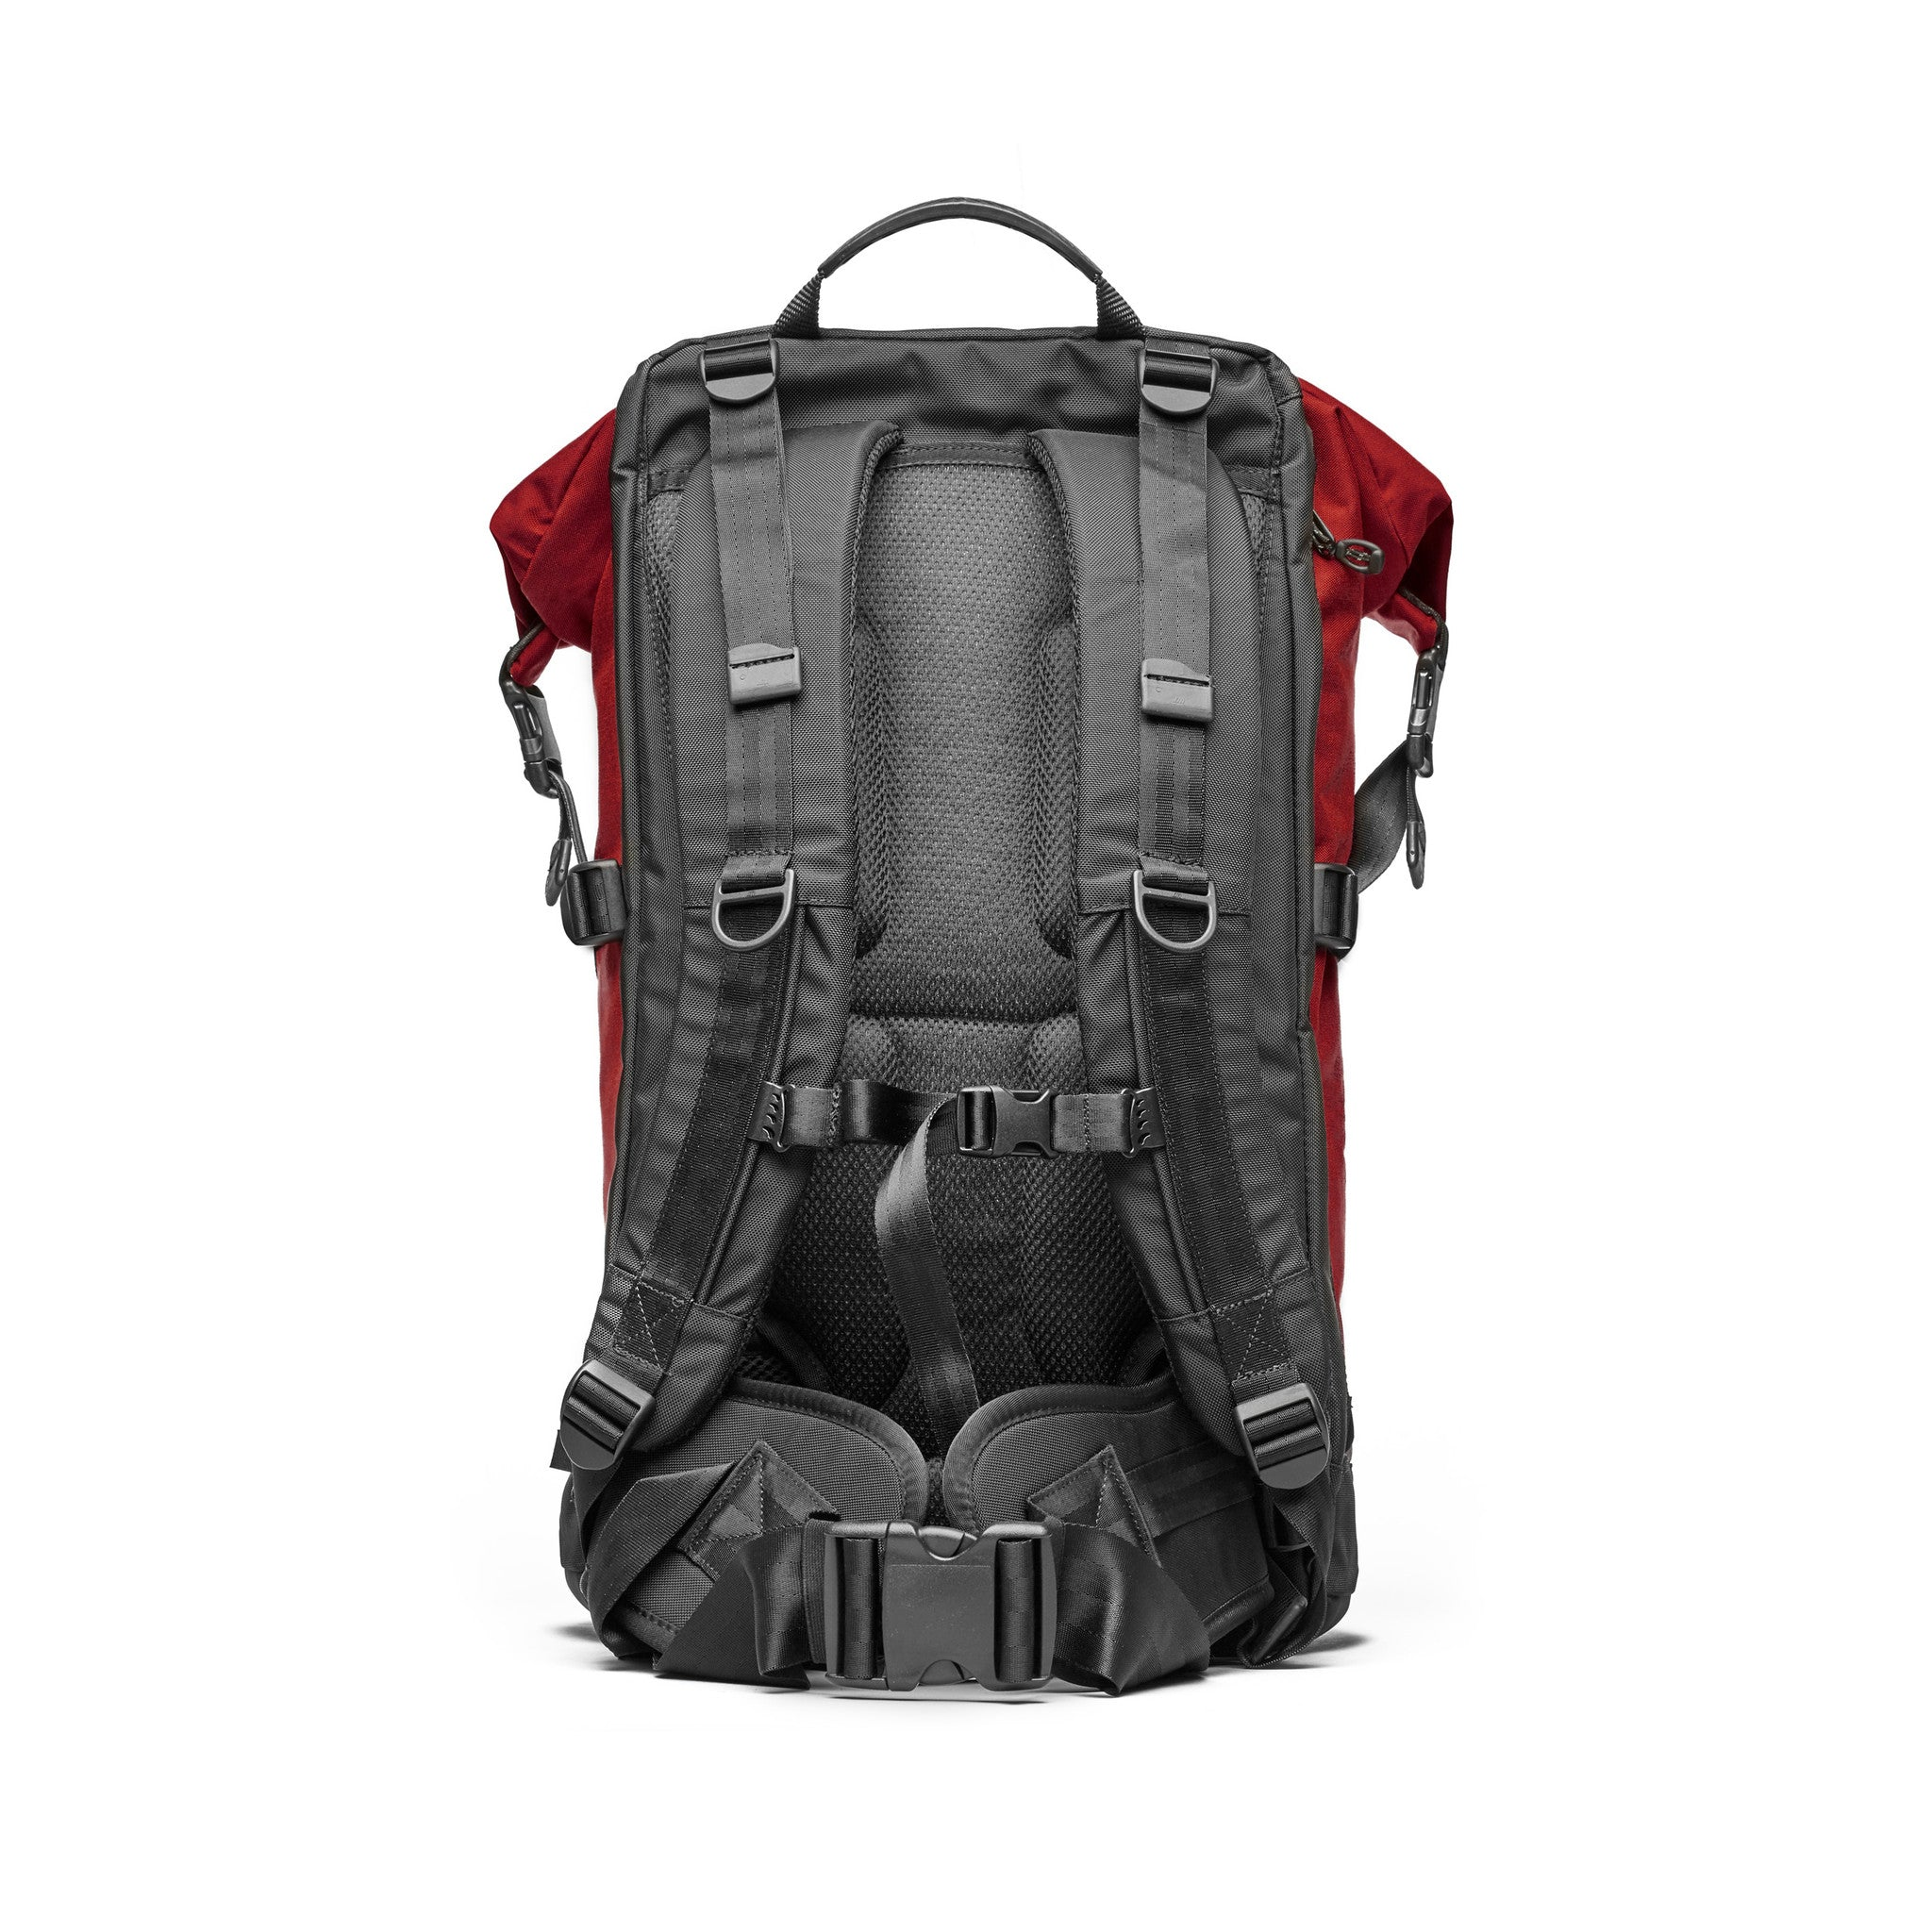 Trecknos Roll Top Pack - Red